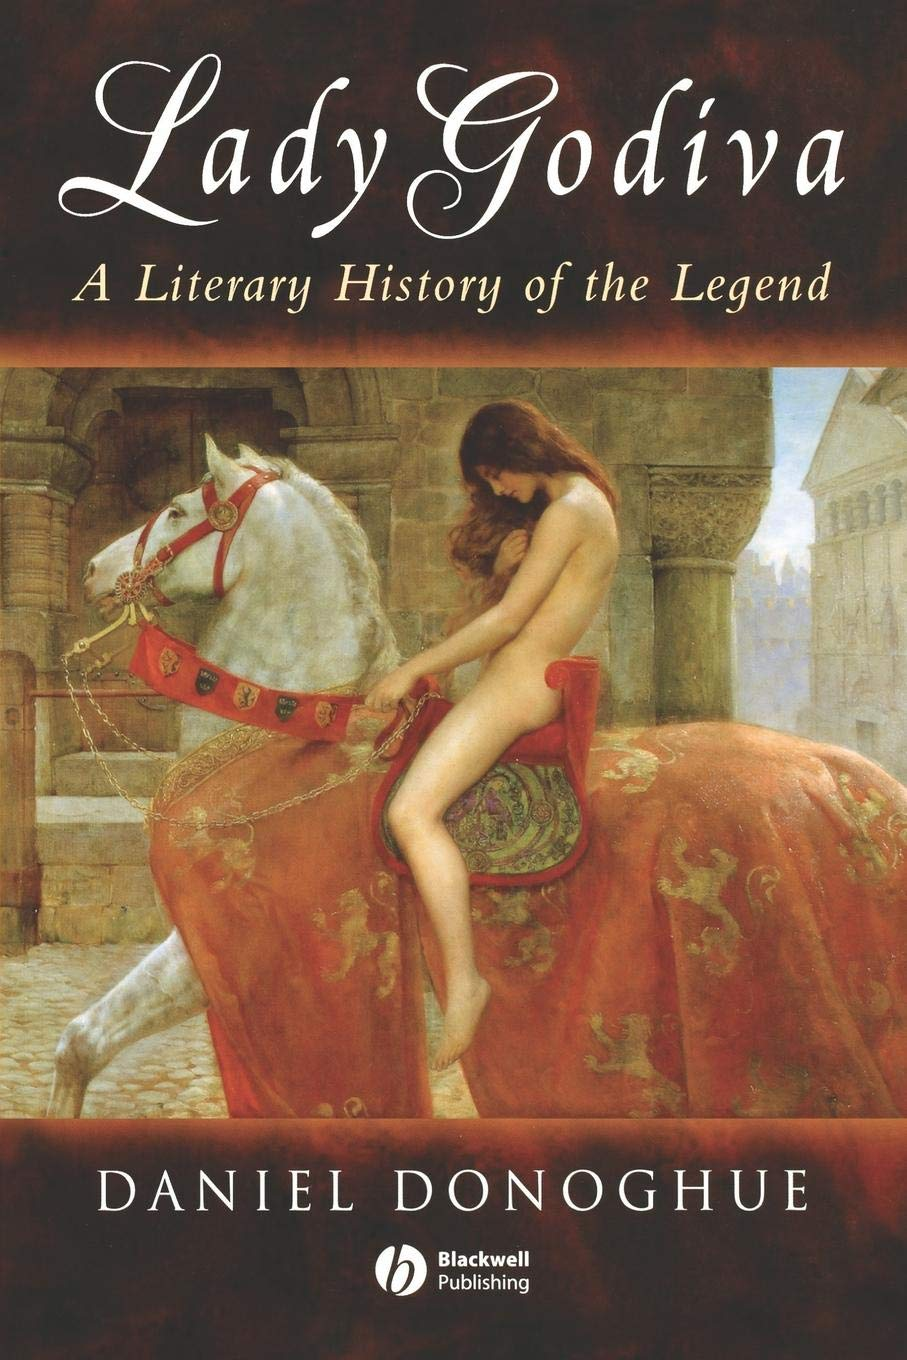 Lady Godiva: A Literary History of the Legend